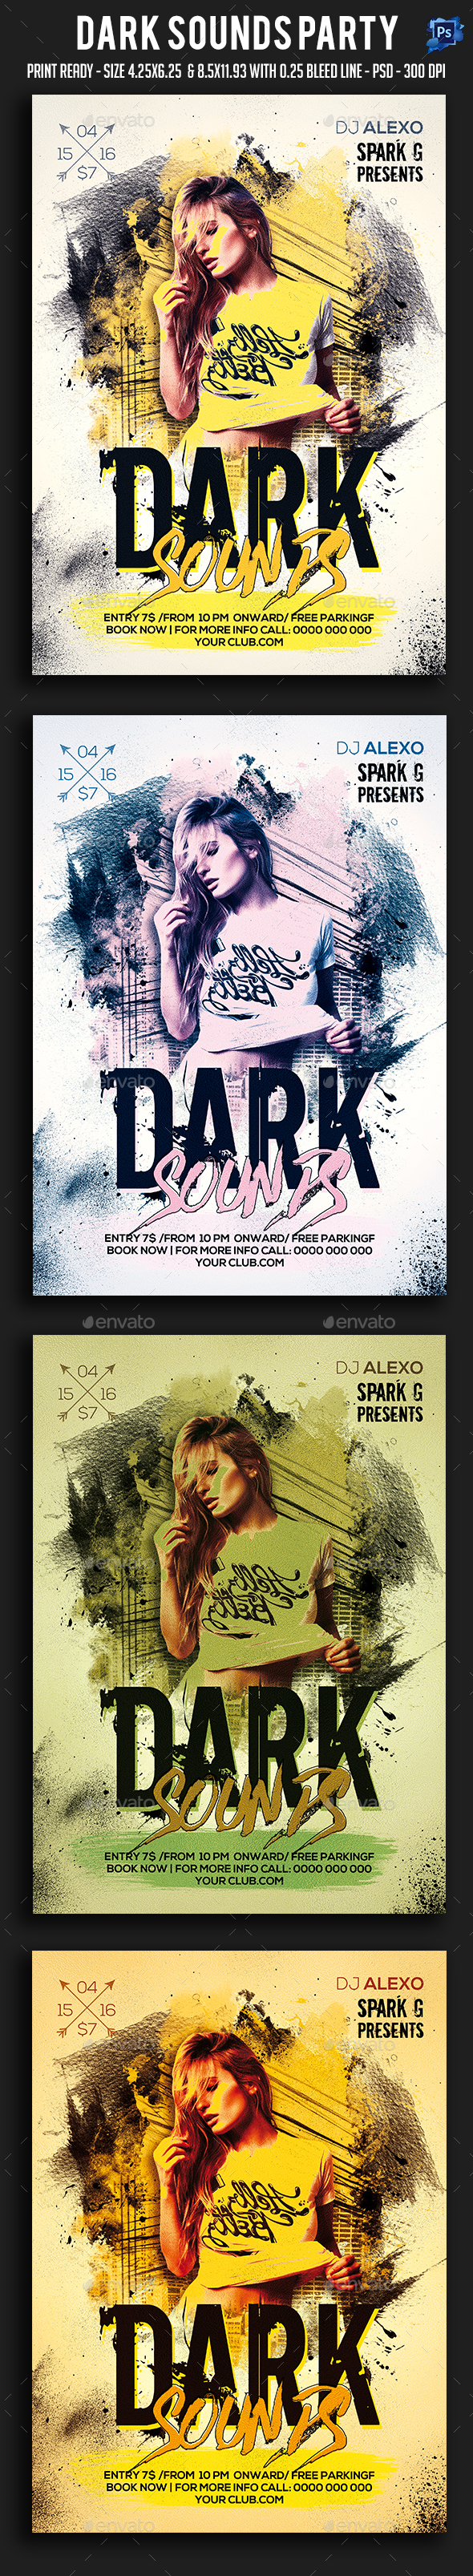 Dark Sounds Party Flyer - Clubs & Parties Events